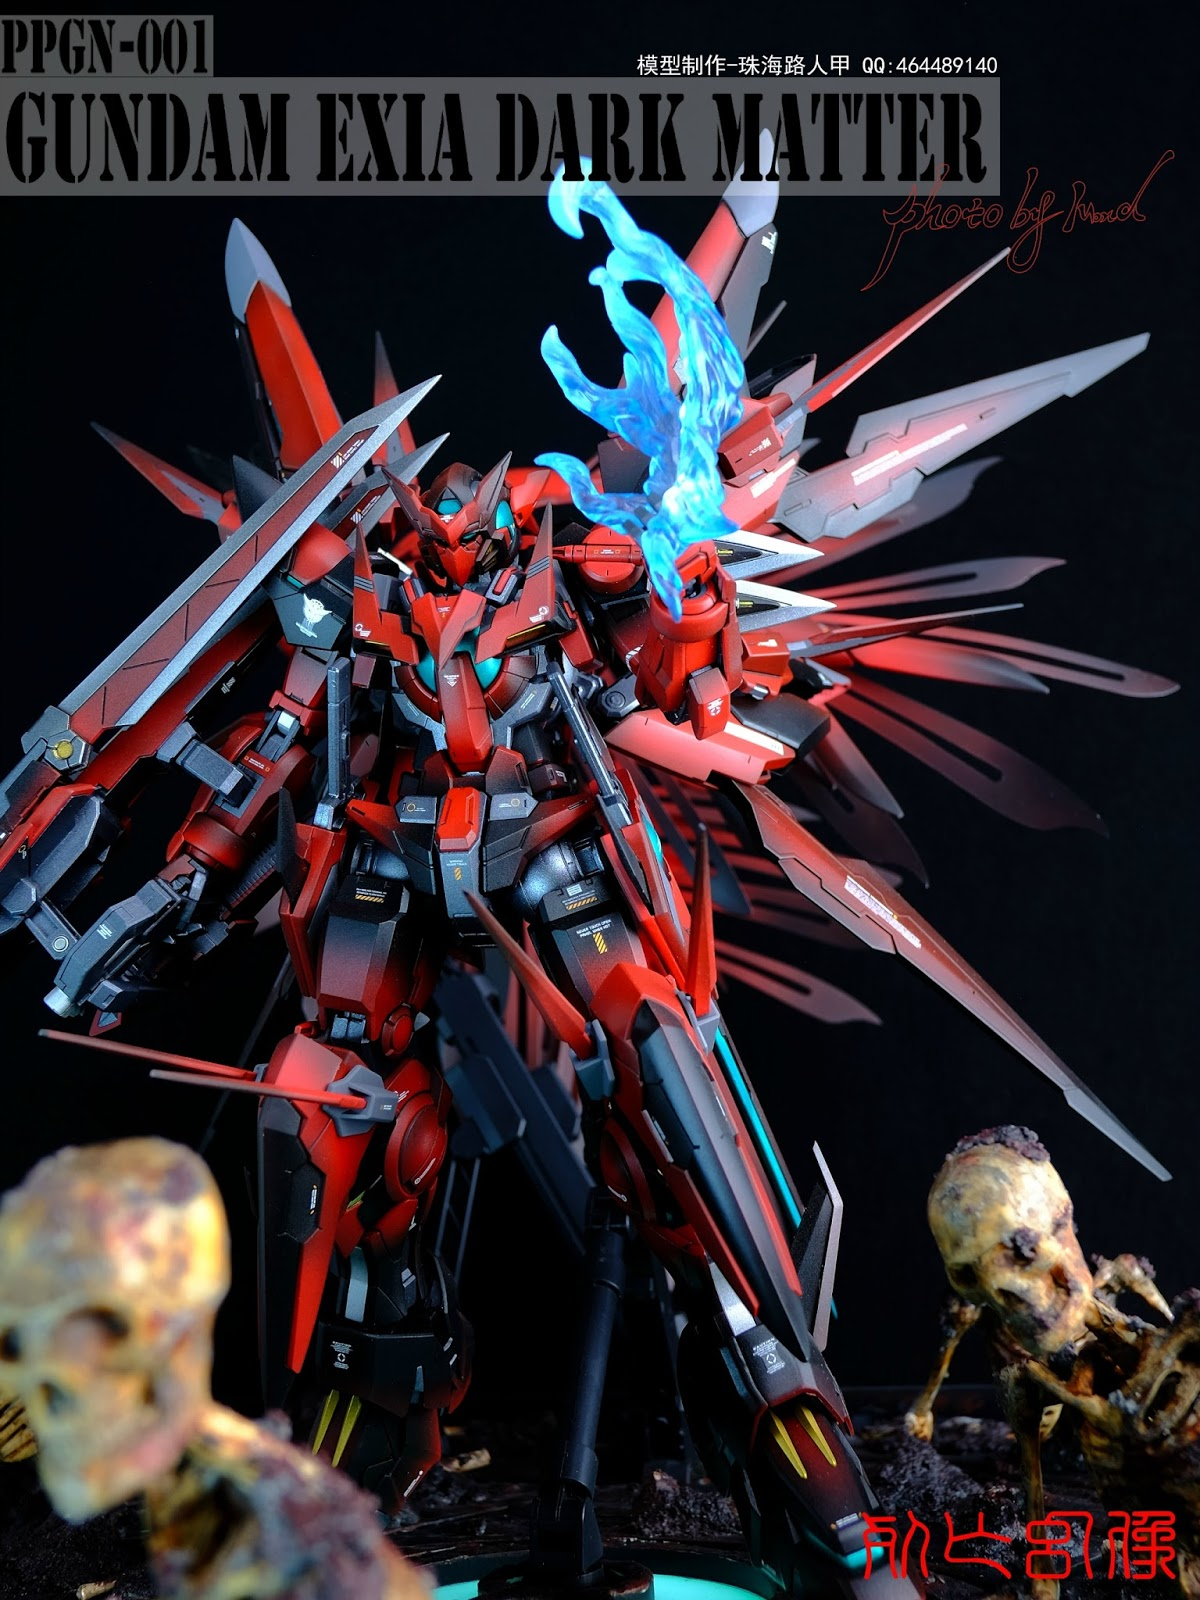 gundam exia dark matter custom - photo #31